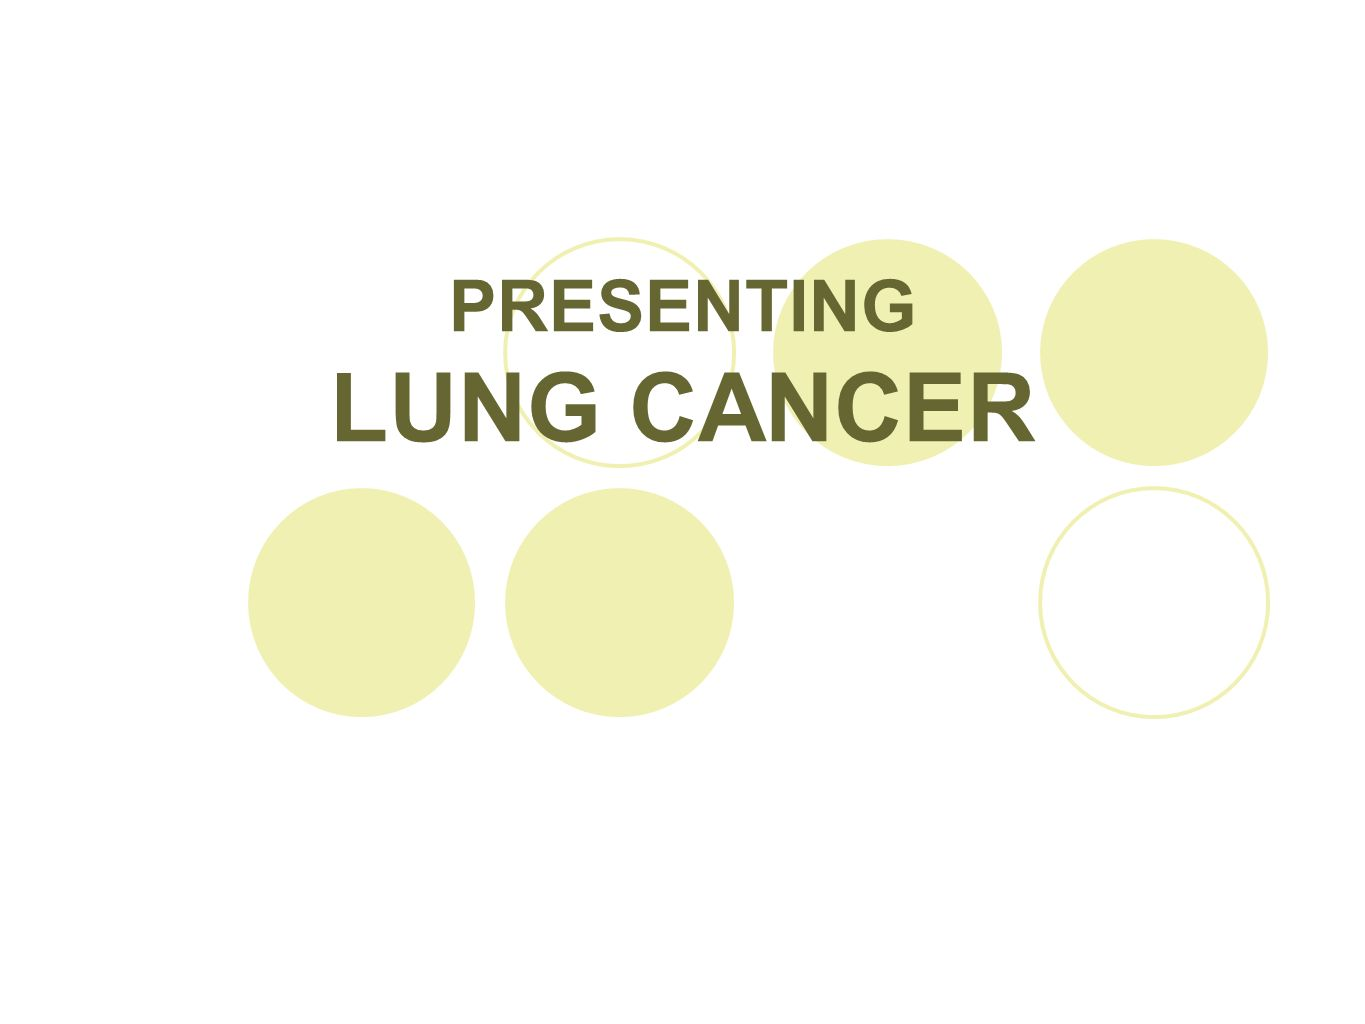 PRESENTING LUNG CANCER